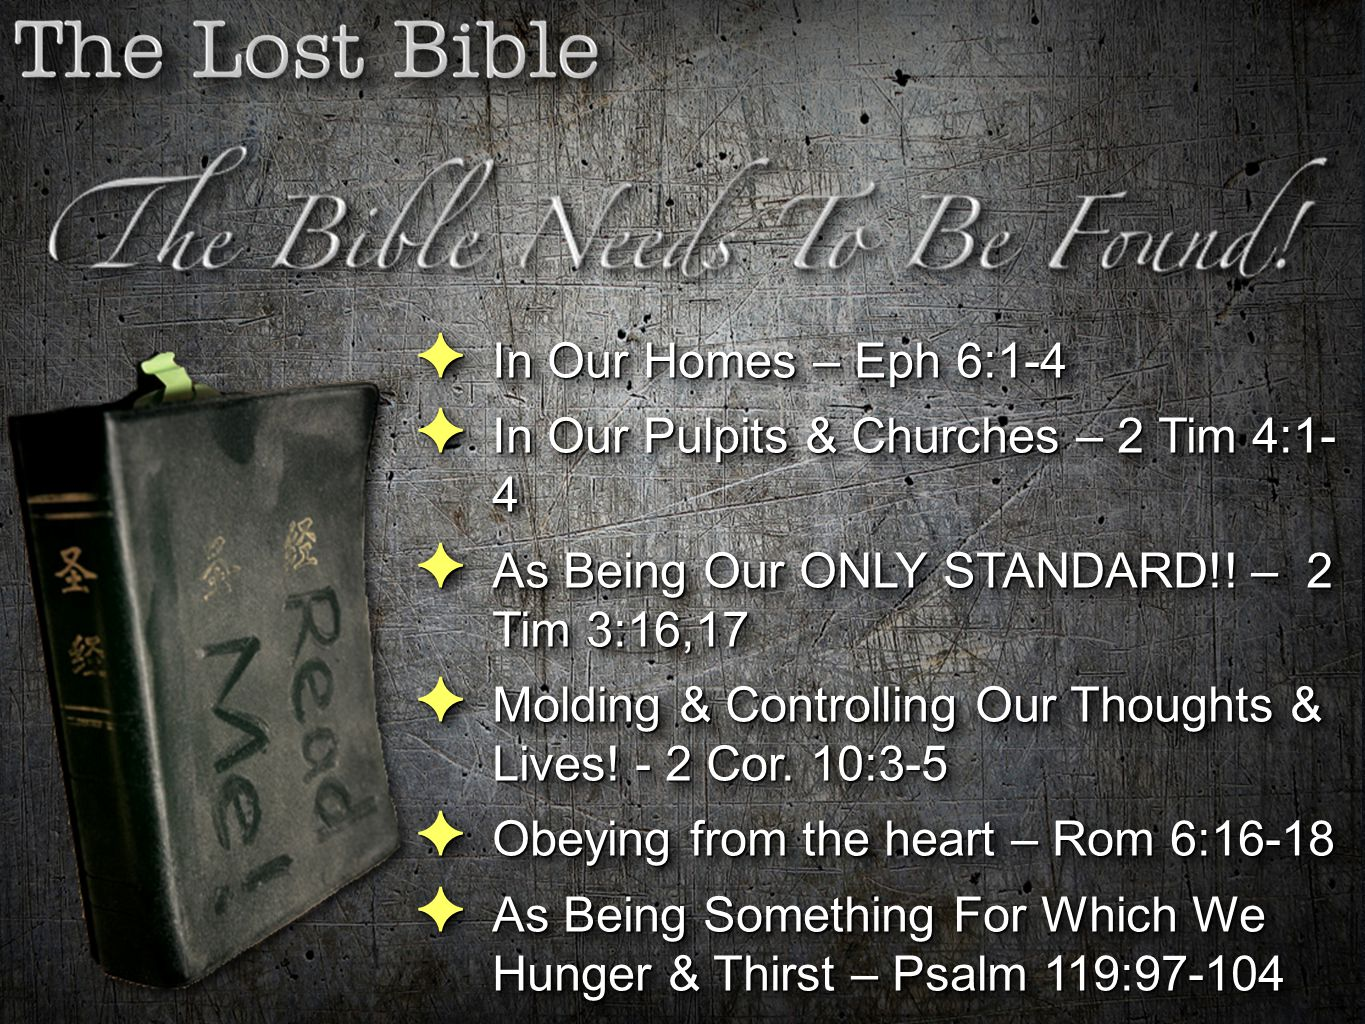 ✦ In Our Homes – Eph 6:1-4 ✦ In Our Pulpits & Churches – 2 Tim 4:1- 4 ✦ As Being Our ONLY STANDARD!! – 2 Tim 3:16,17 ✦ Molding & Controlling Our Thoug